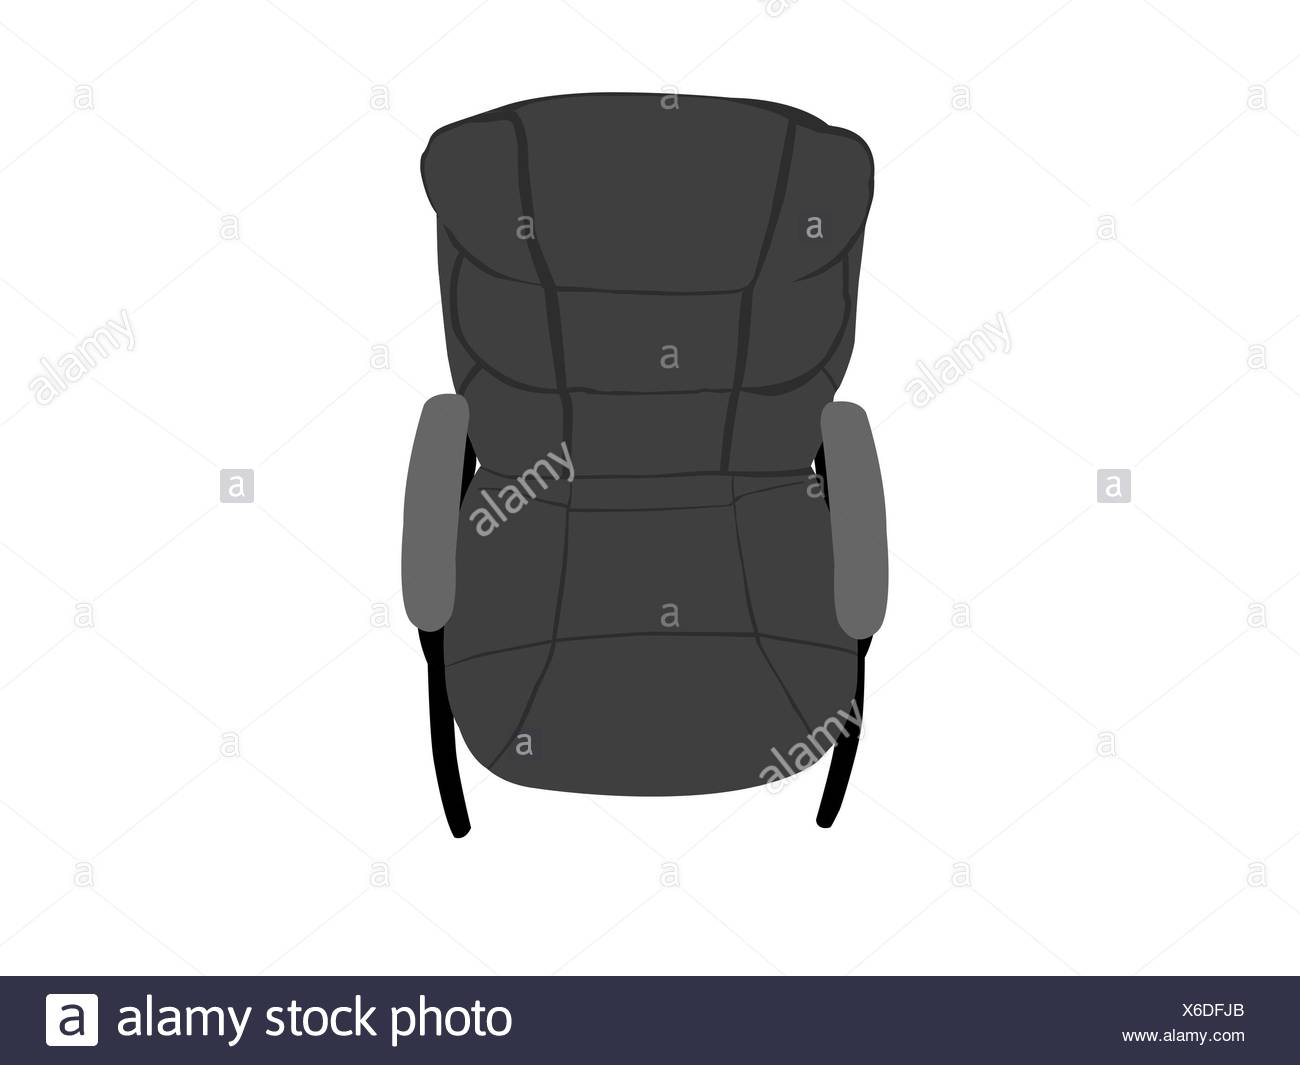 leather chair - Stock Image